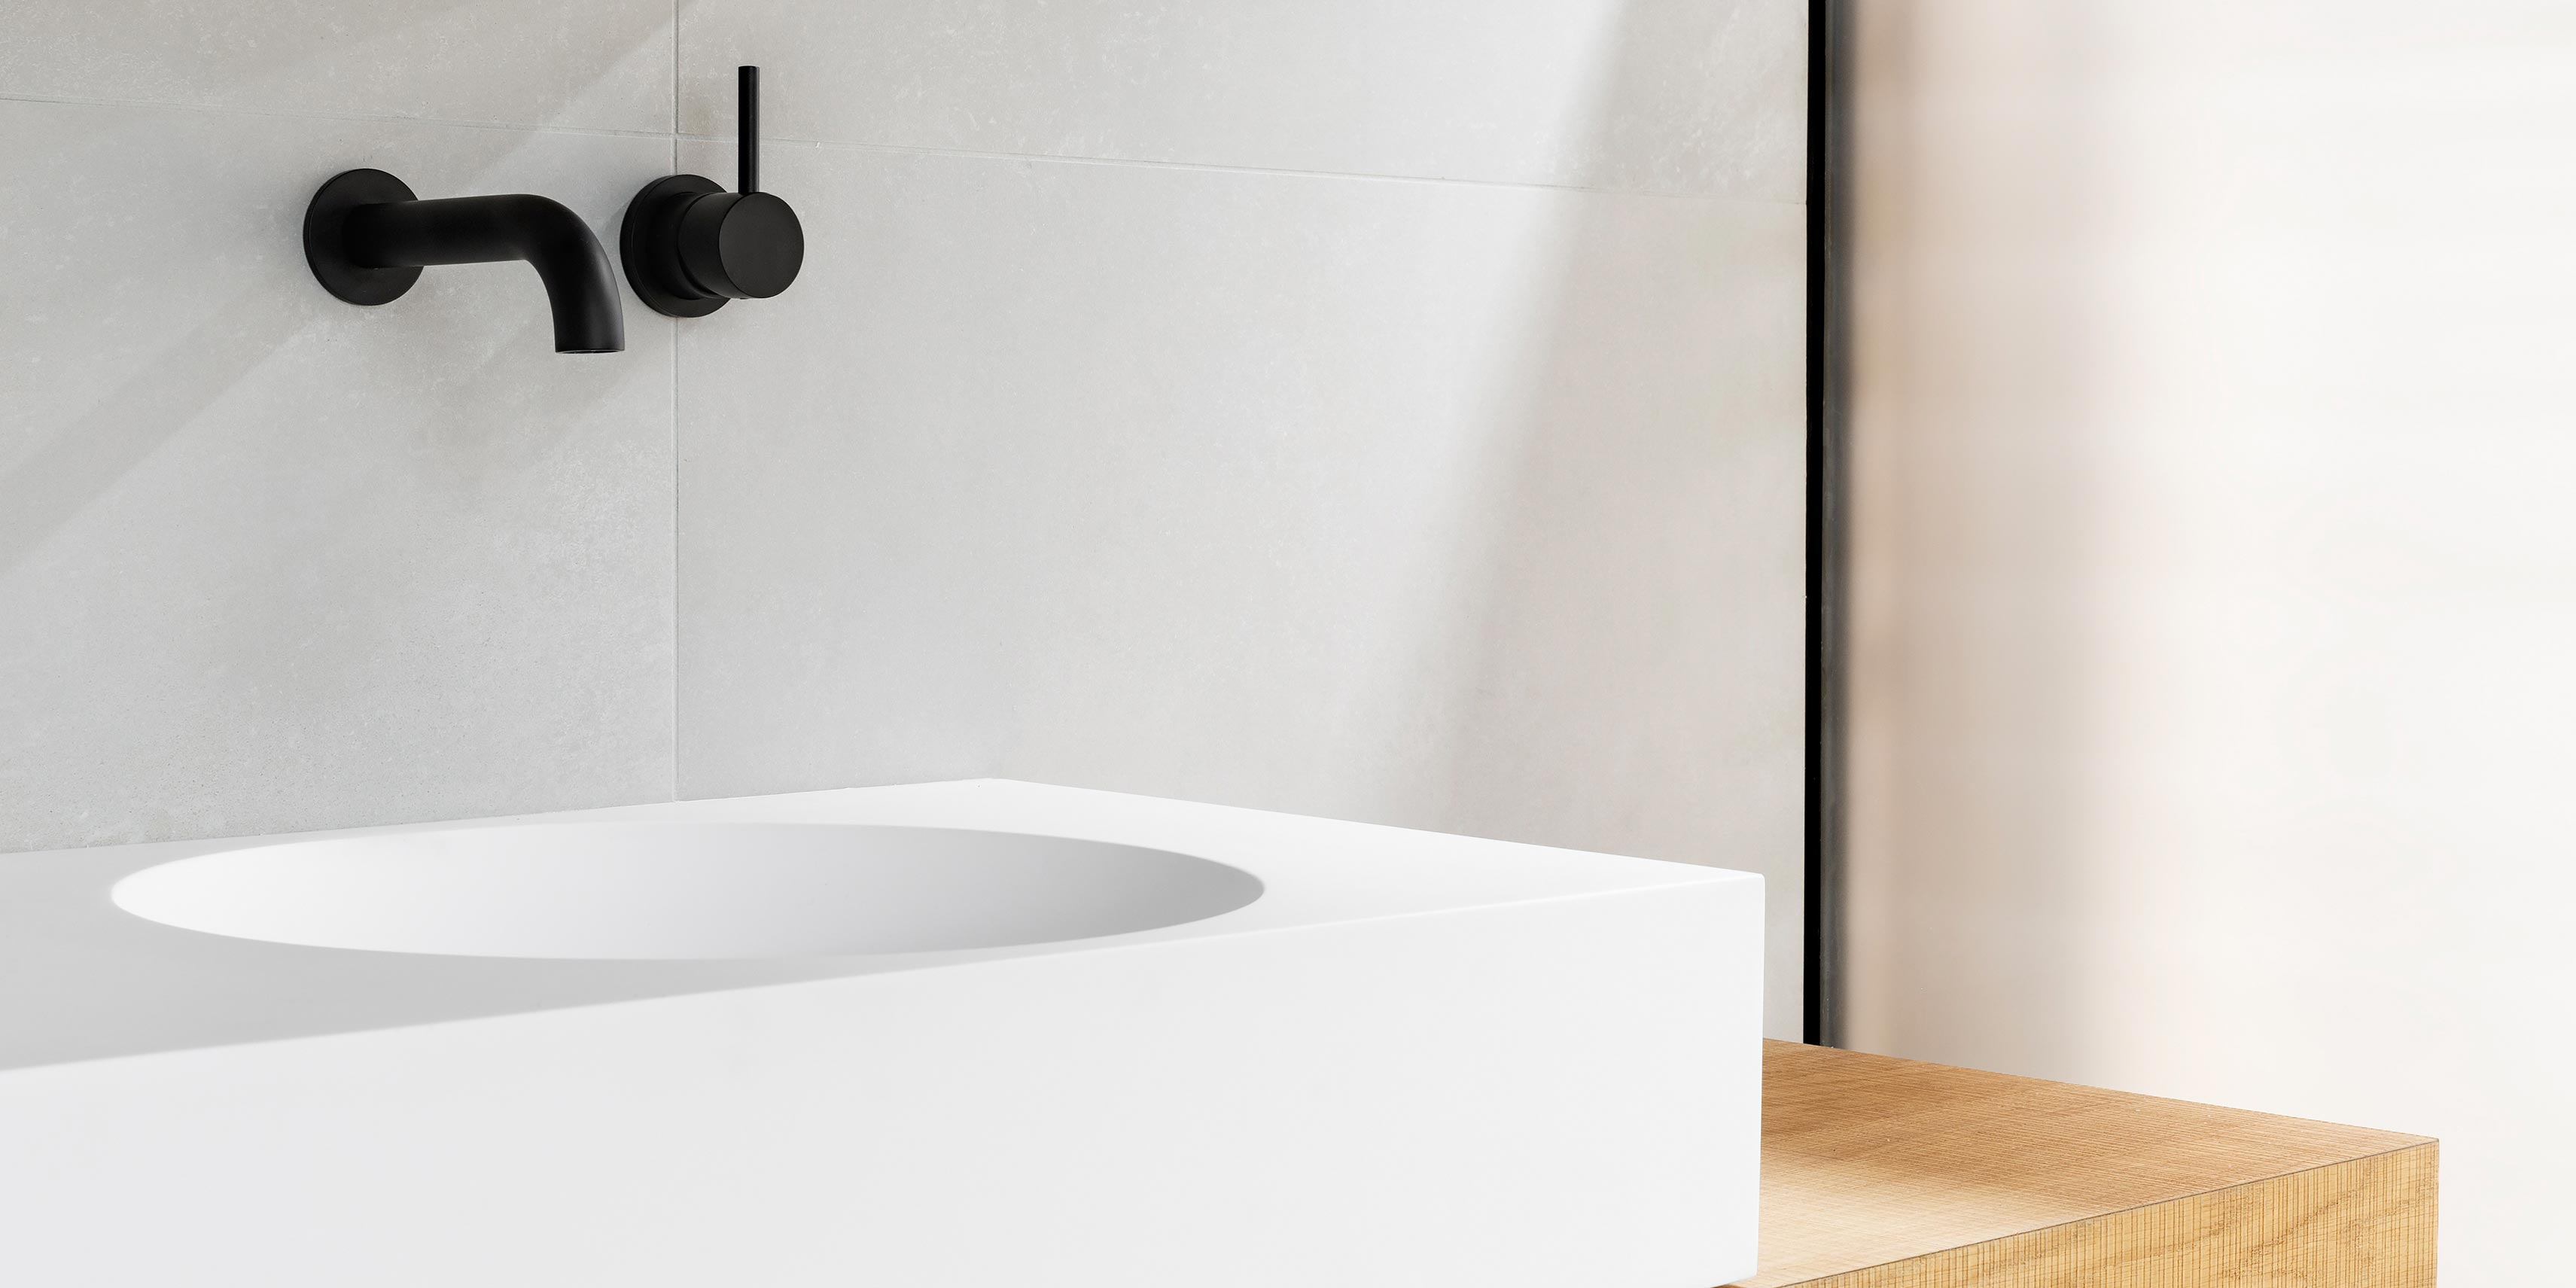 Gallery Of Elwood Home Smarter Bathrooms+ Local Design And Interiors Elwood, Vic Image 9